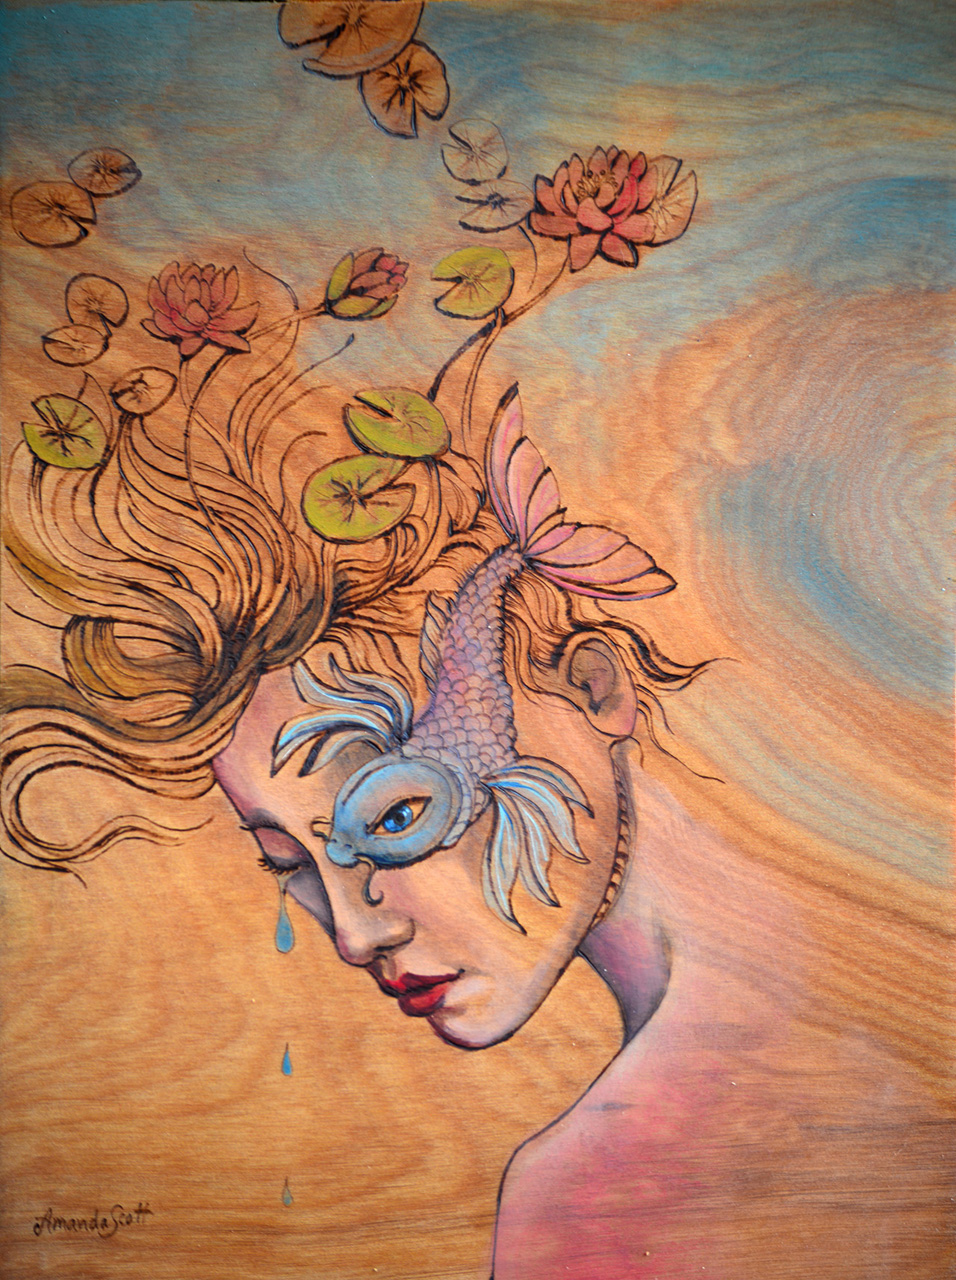 Tranquil Pool by Amanda Scott oil on wood woman with fish over her eye